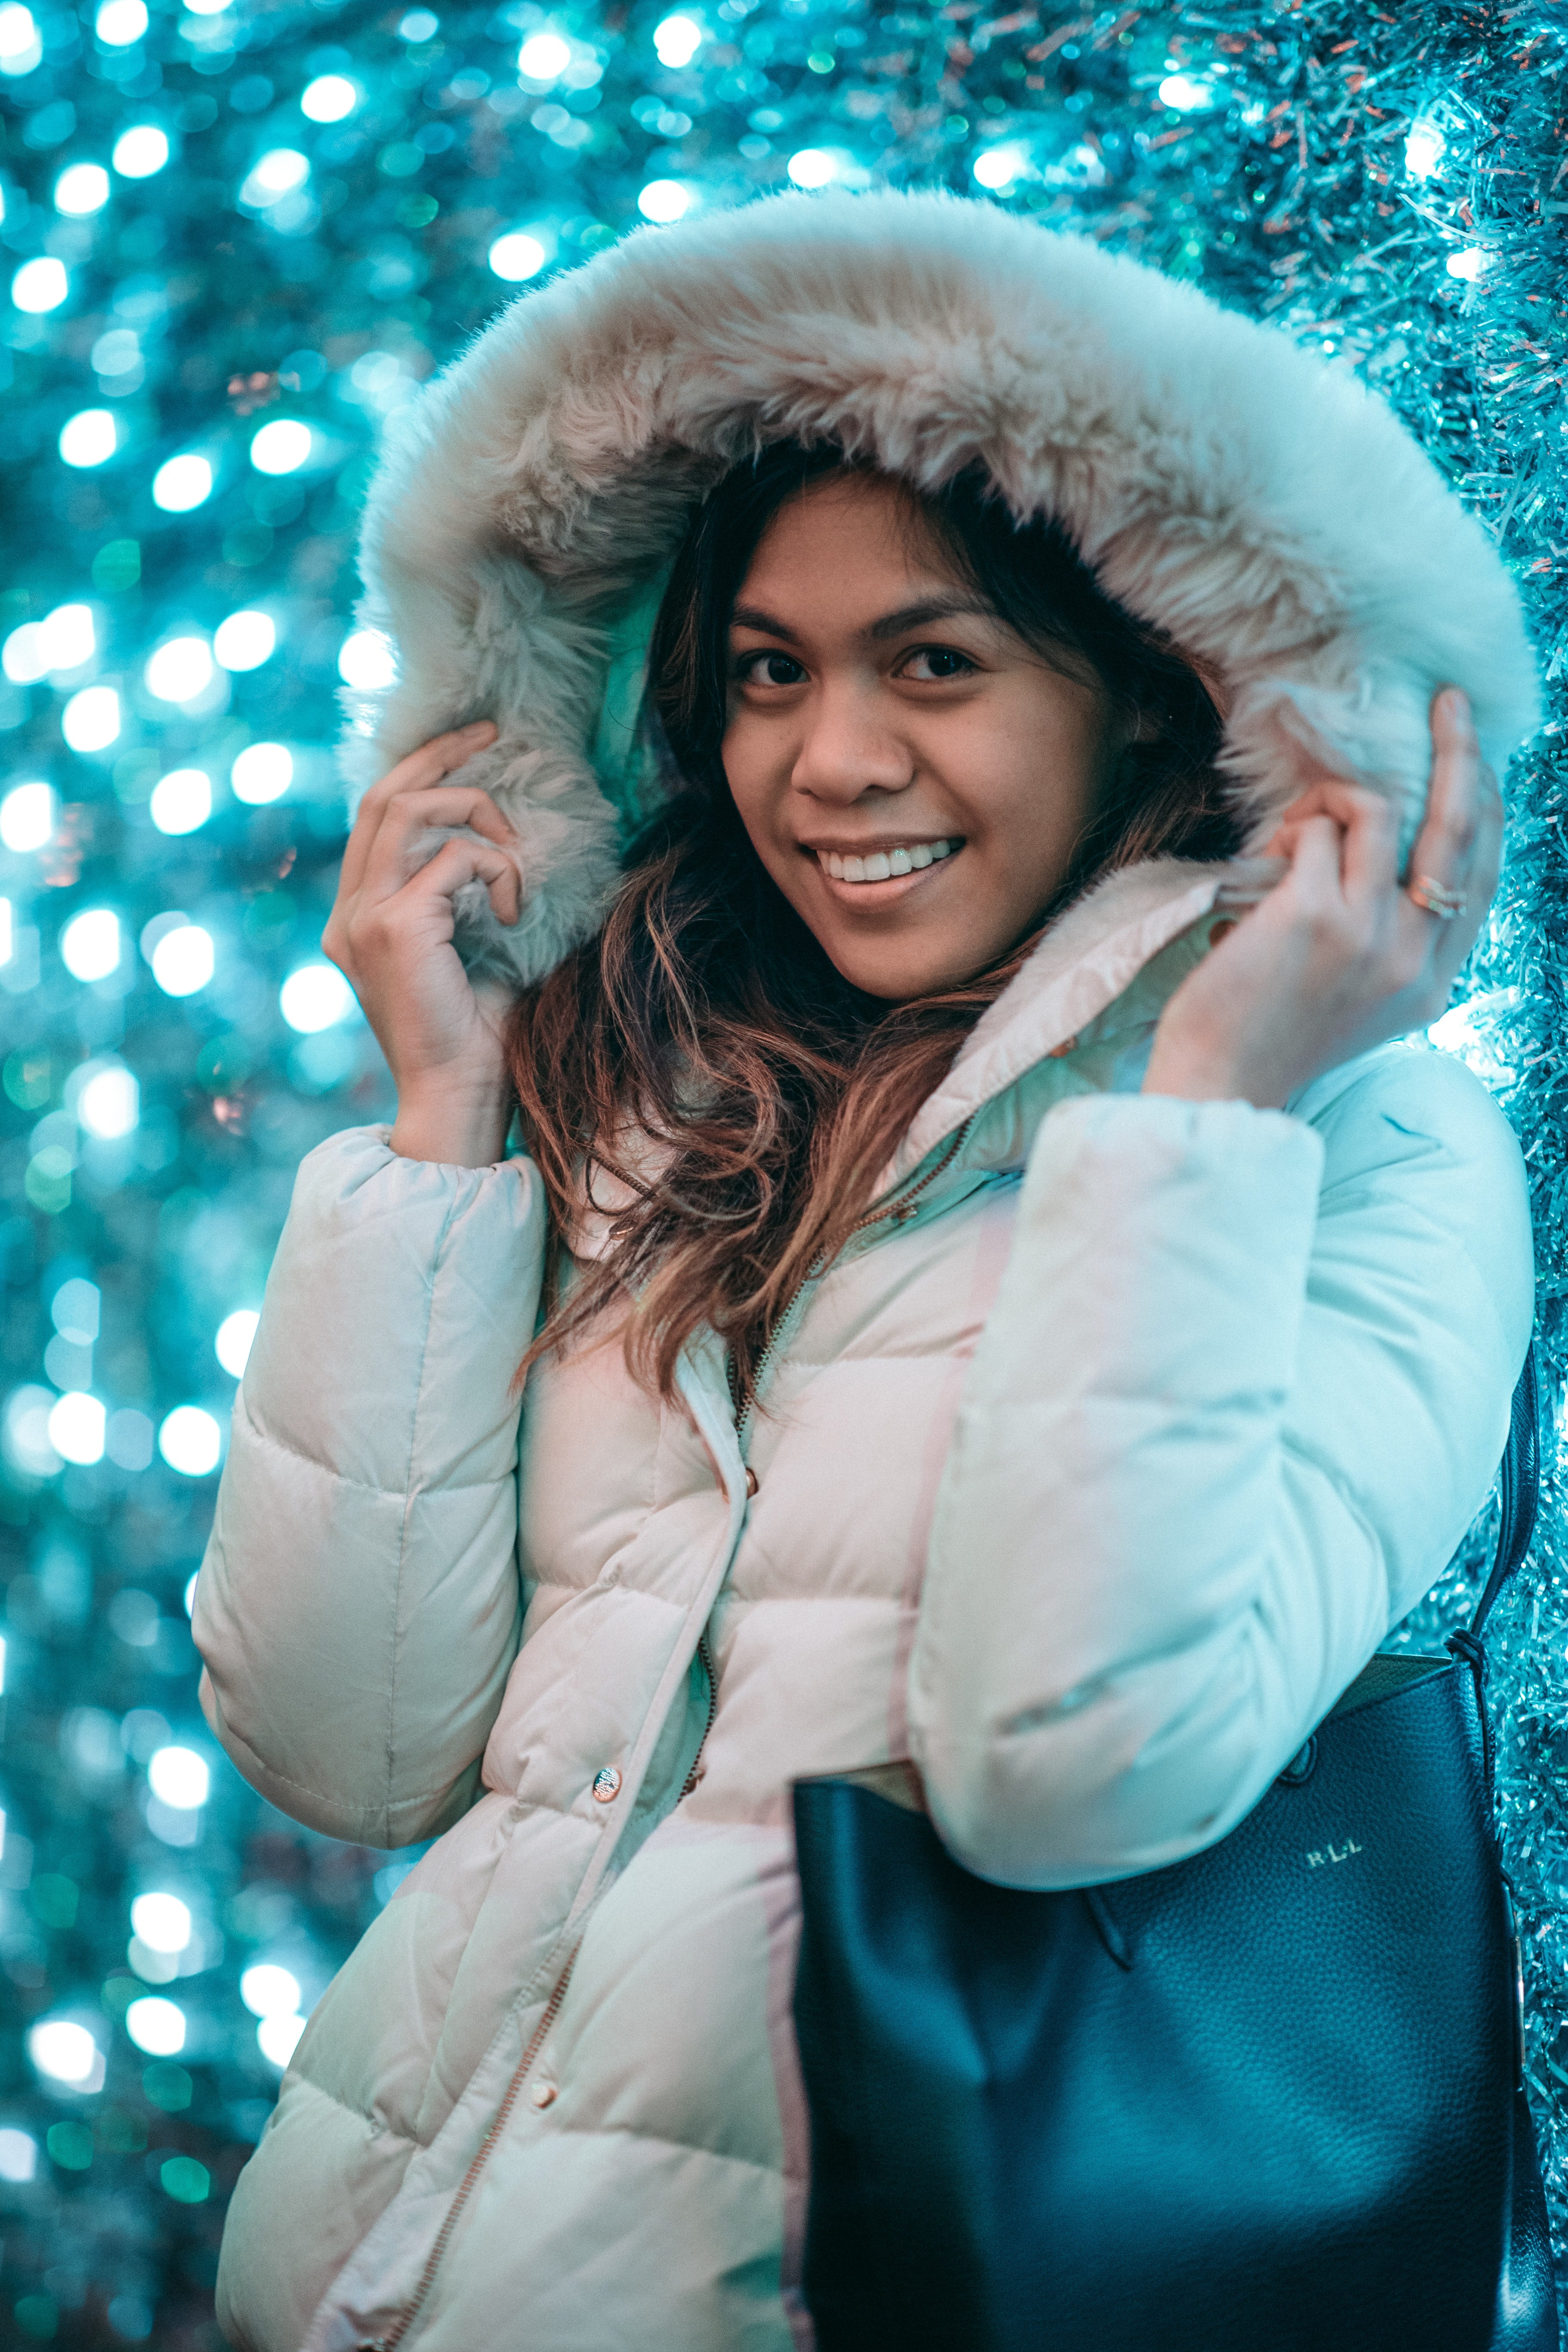 woman in parka jacket taking selfie while smiling